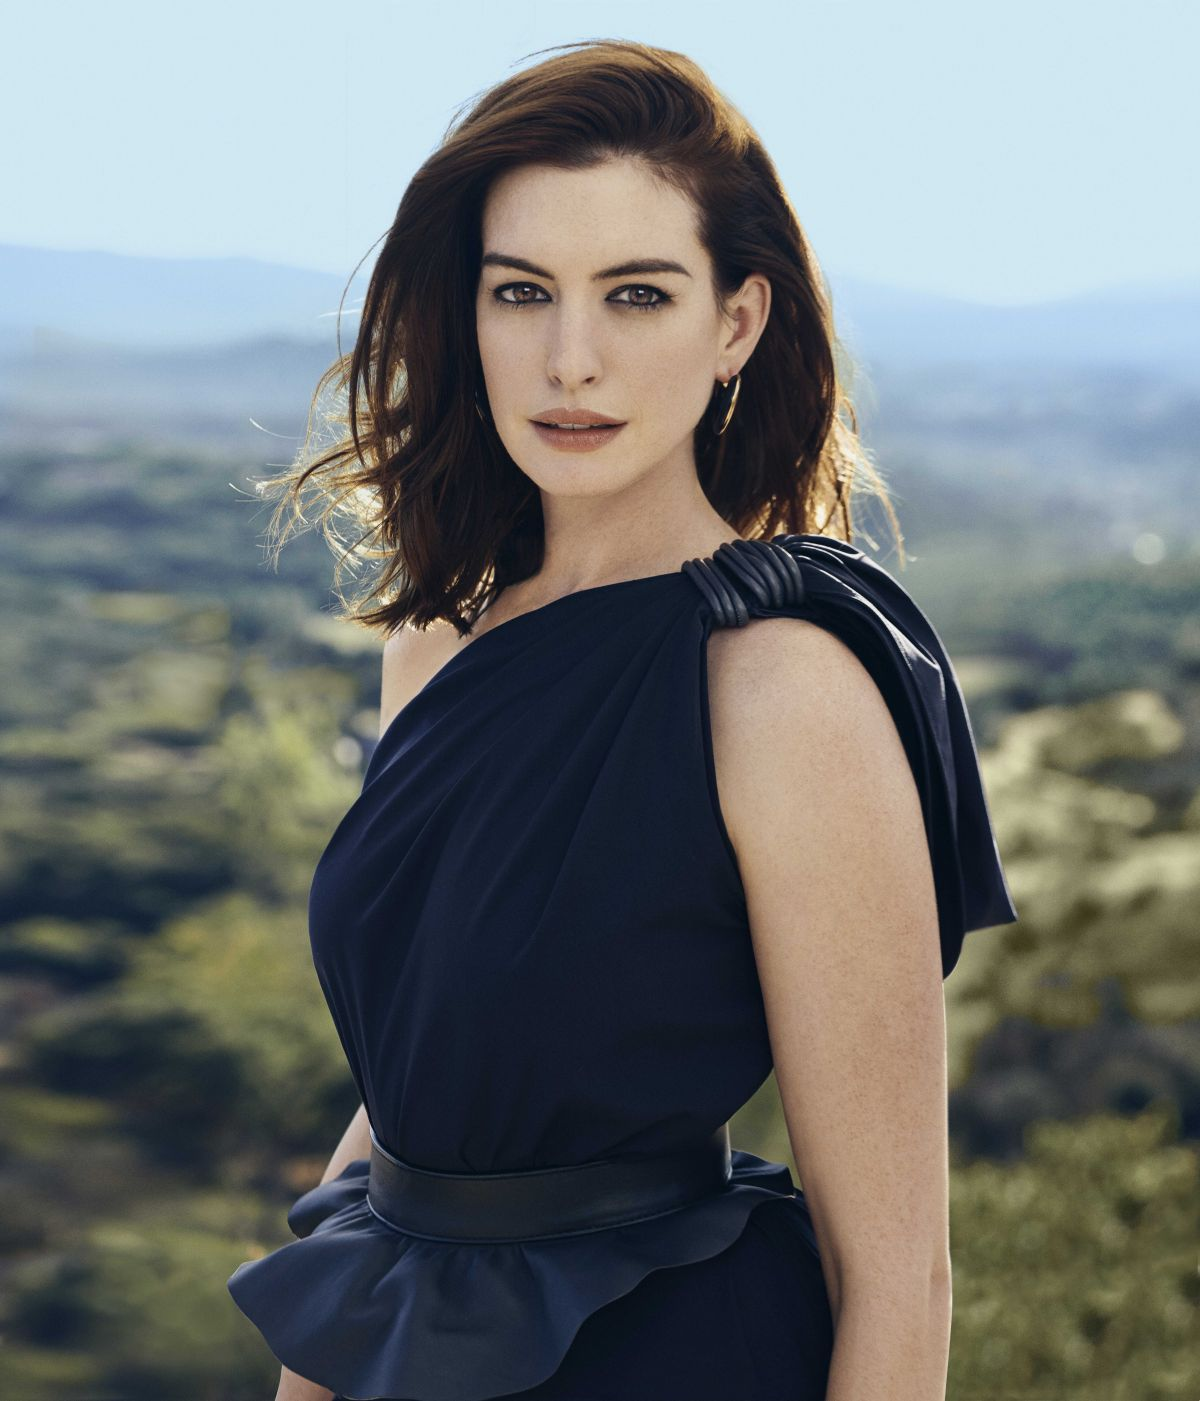 Anne Hathaway HOT Photoshoot for Town Country Magazine February 2019